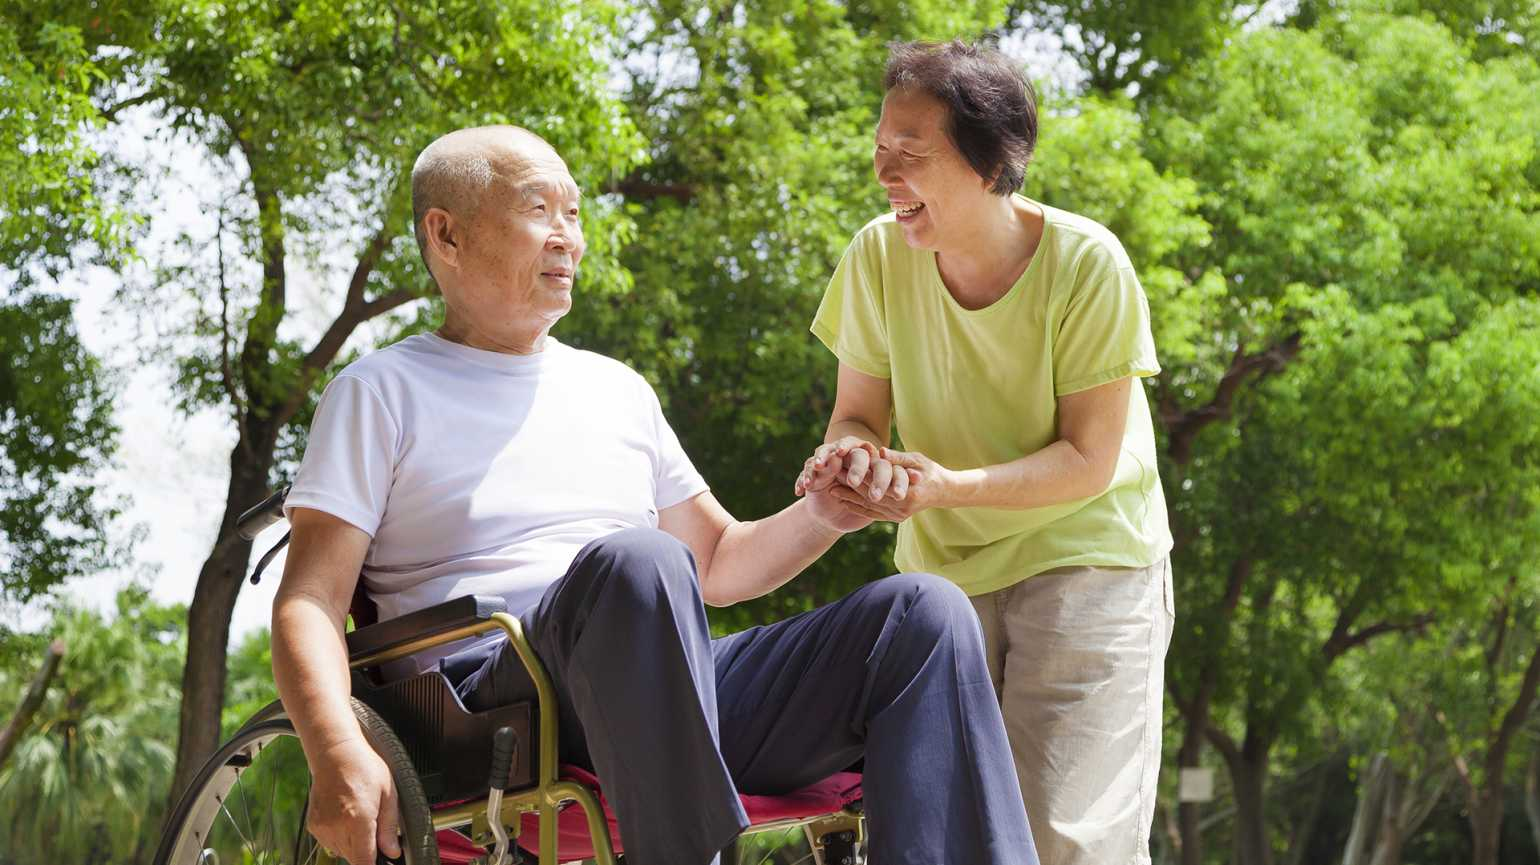 A woman serves as caregiver to her spouse